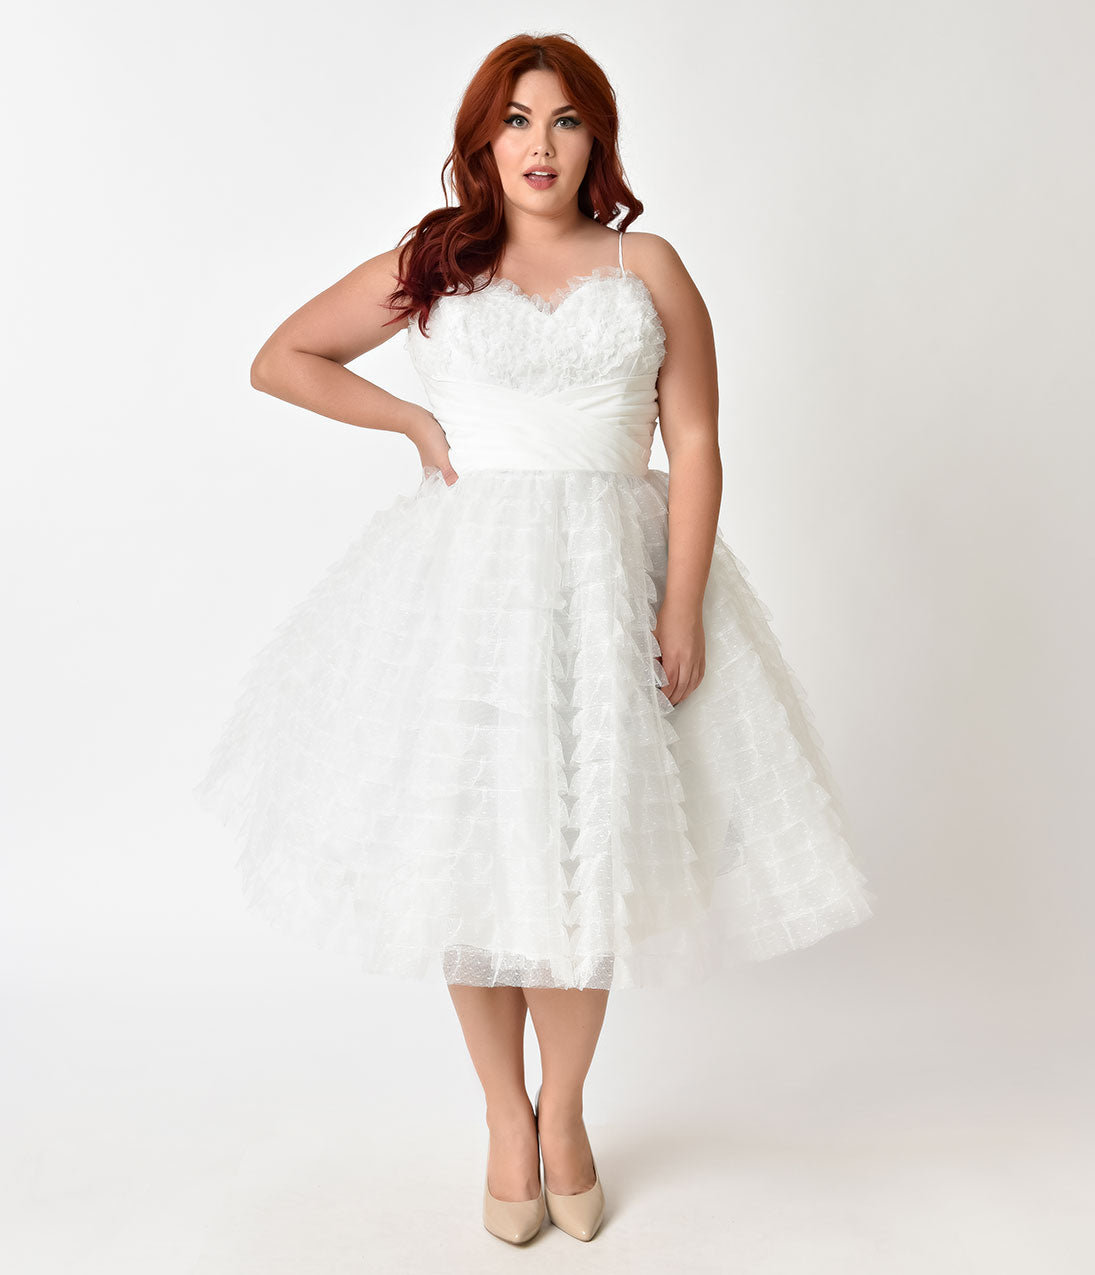 Vintage Inspired Wedding Dress | Vintage Style Wedding Dresses Unique Vintage Plus Size 1950S White Ruffled Tulle Sweetheart Cupcake Swing Dress $89.00 AT vintagedancer.com